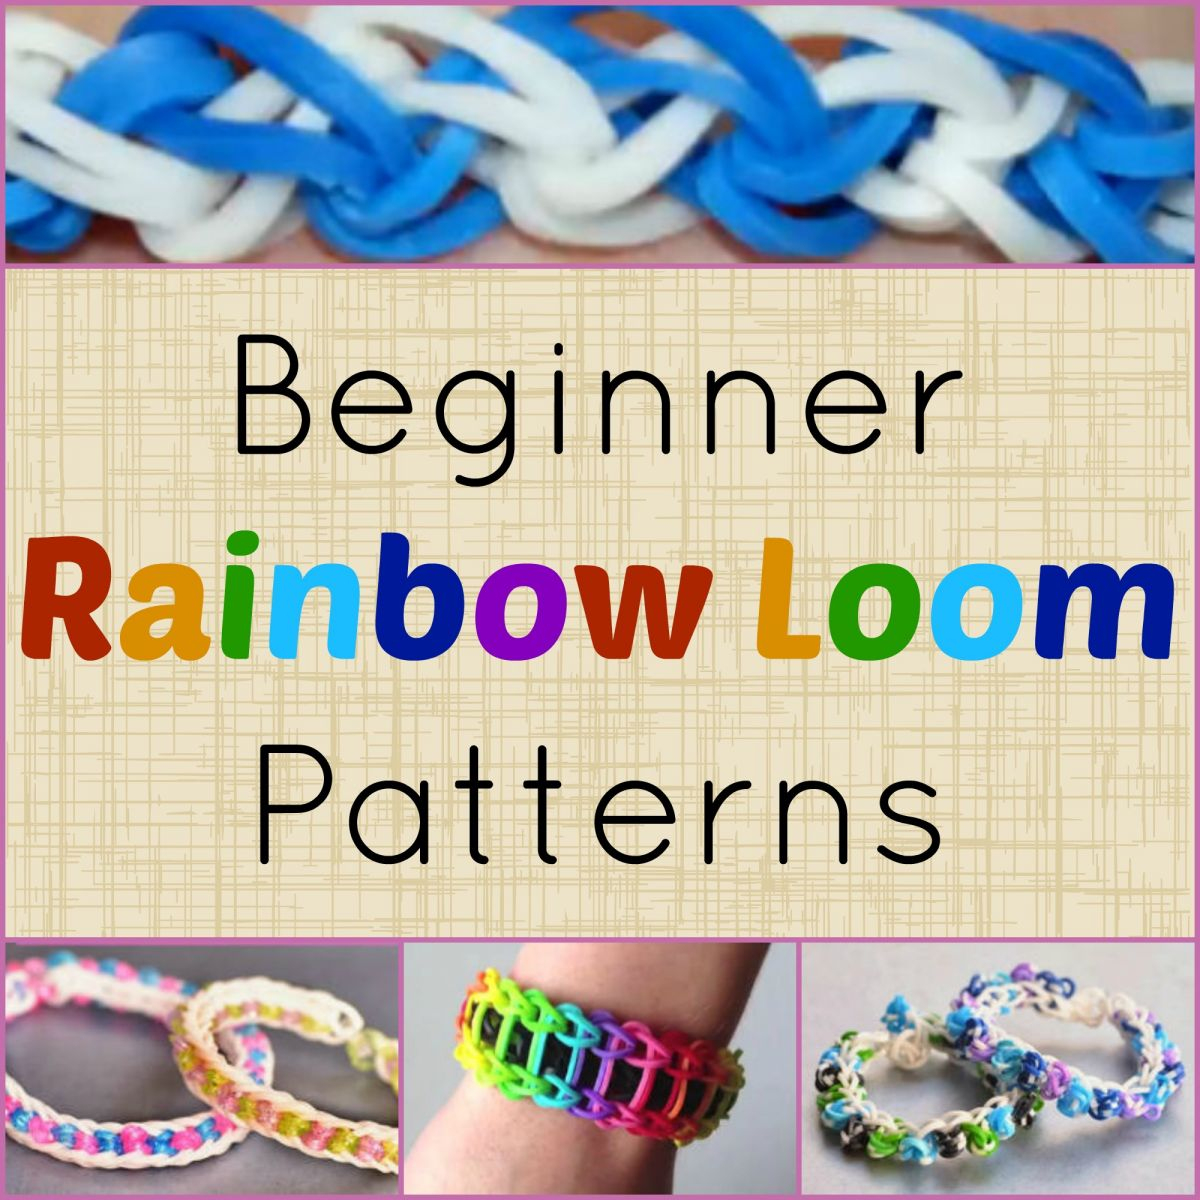 10 Beginner Rainbow Loom Patterns + Video Tutorials - Free Printable Loom Bracelet Patterns